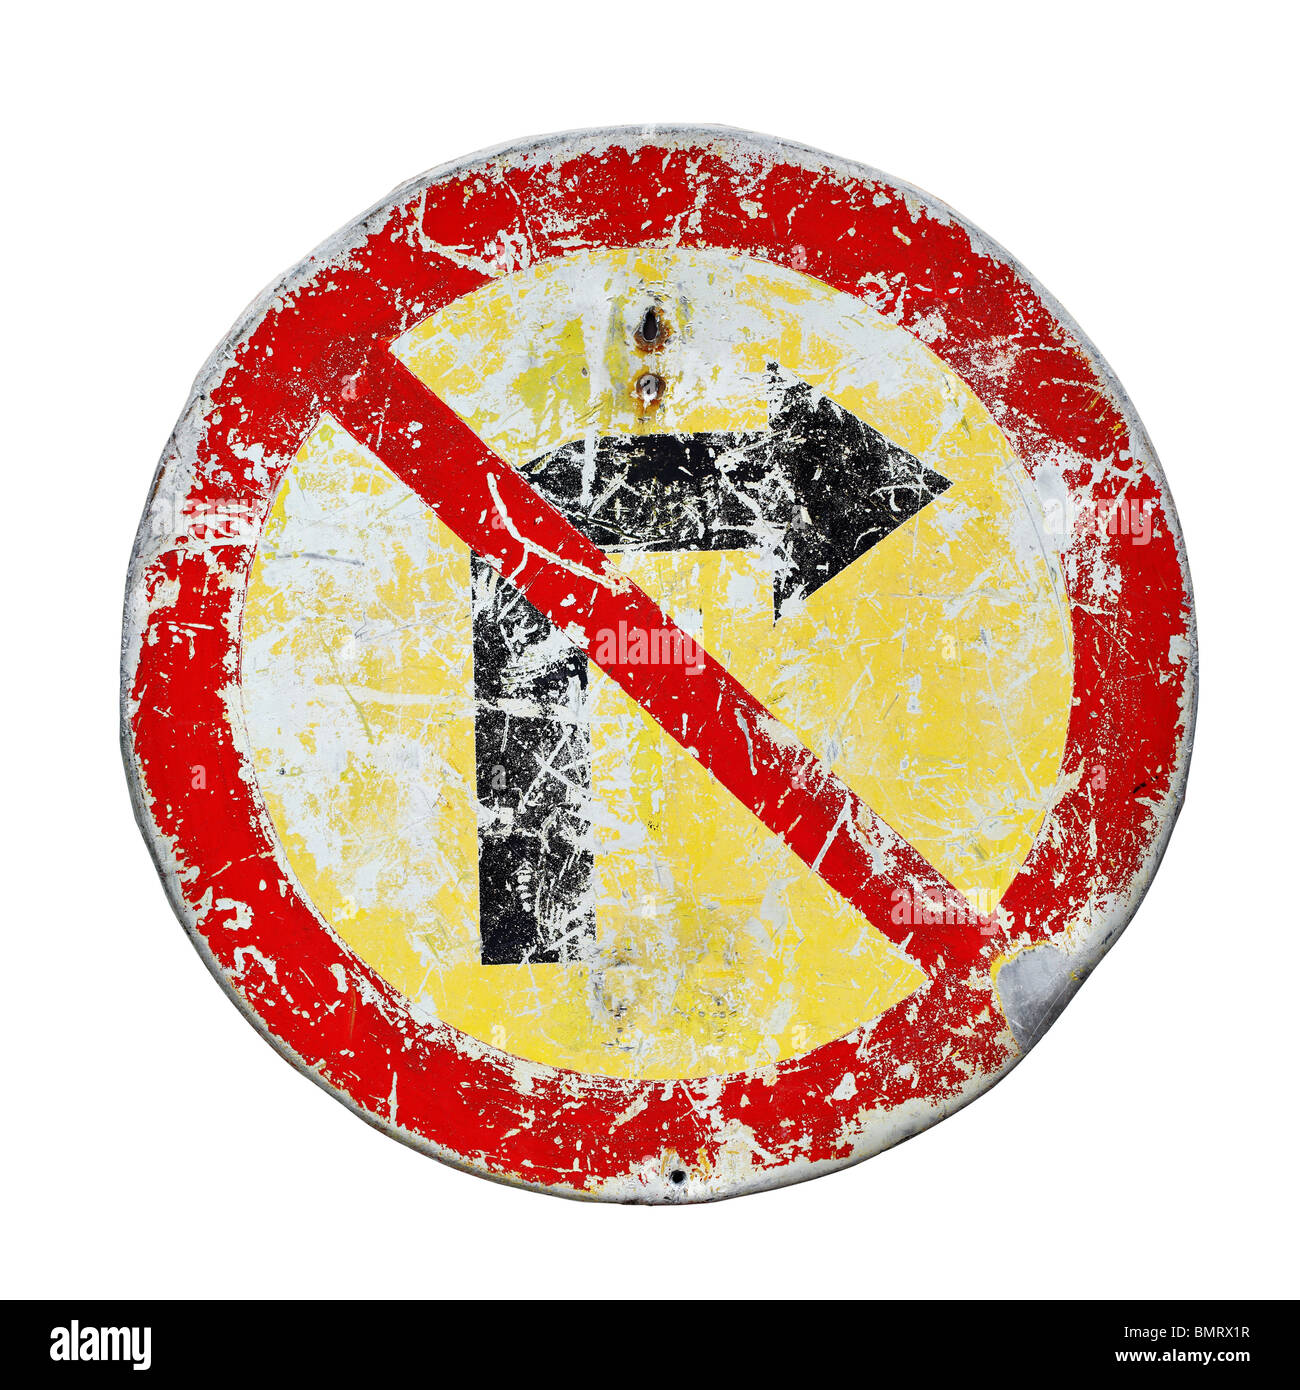 Old scratched no right turn road sign - Stock Image